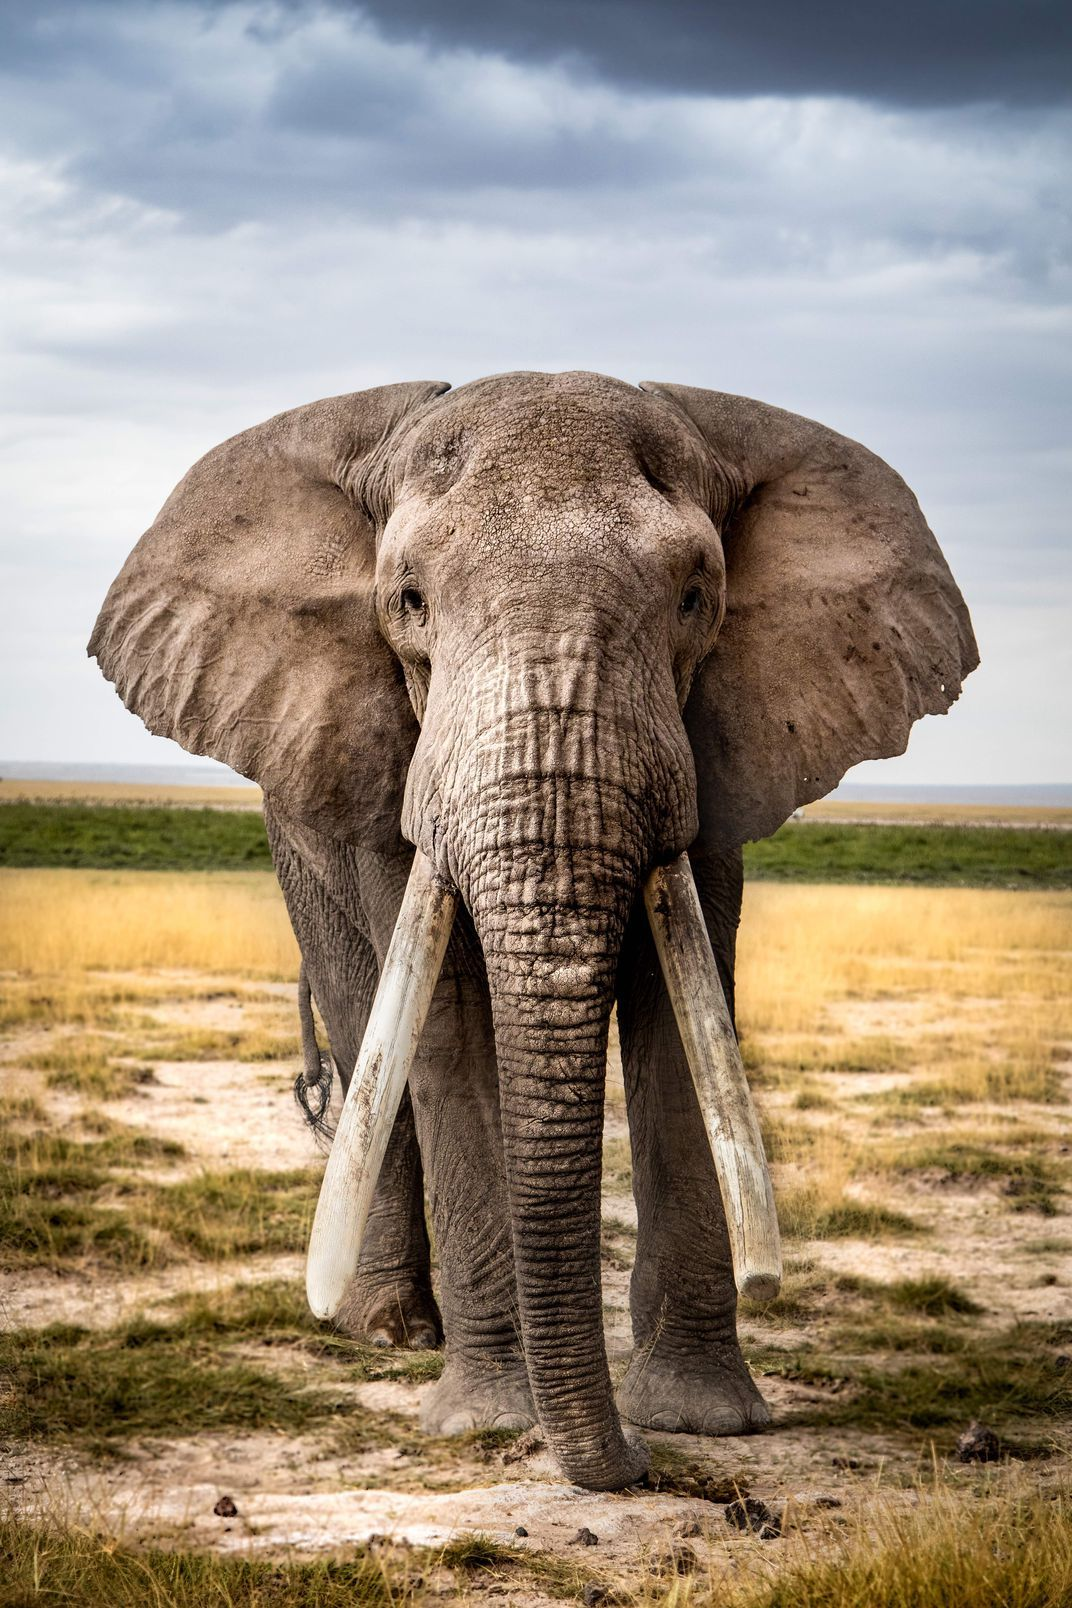 One of the oldest elephants remaining in Amboseli National Park, the essence of this photograph is wisdom. Staring into the uninterrupted gaze of this bull elephant conveys the hardened sorrow that has culminated from the pain of having family members lost to poaching.